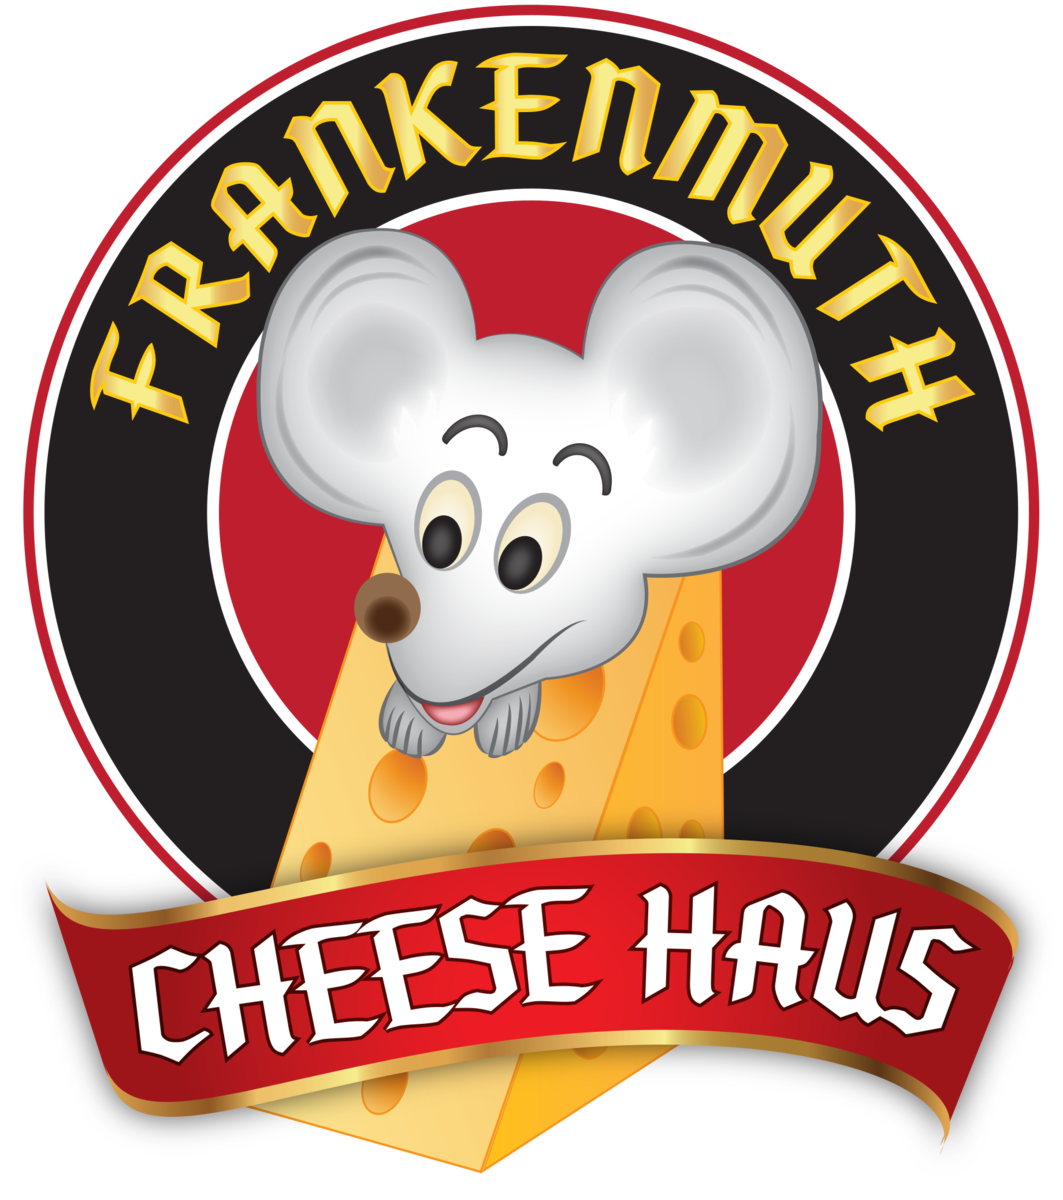 Factories clipart cheese factory. Frankenmuth haus celebrating years